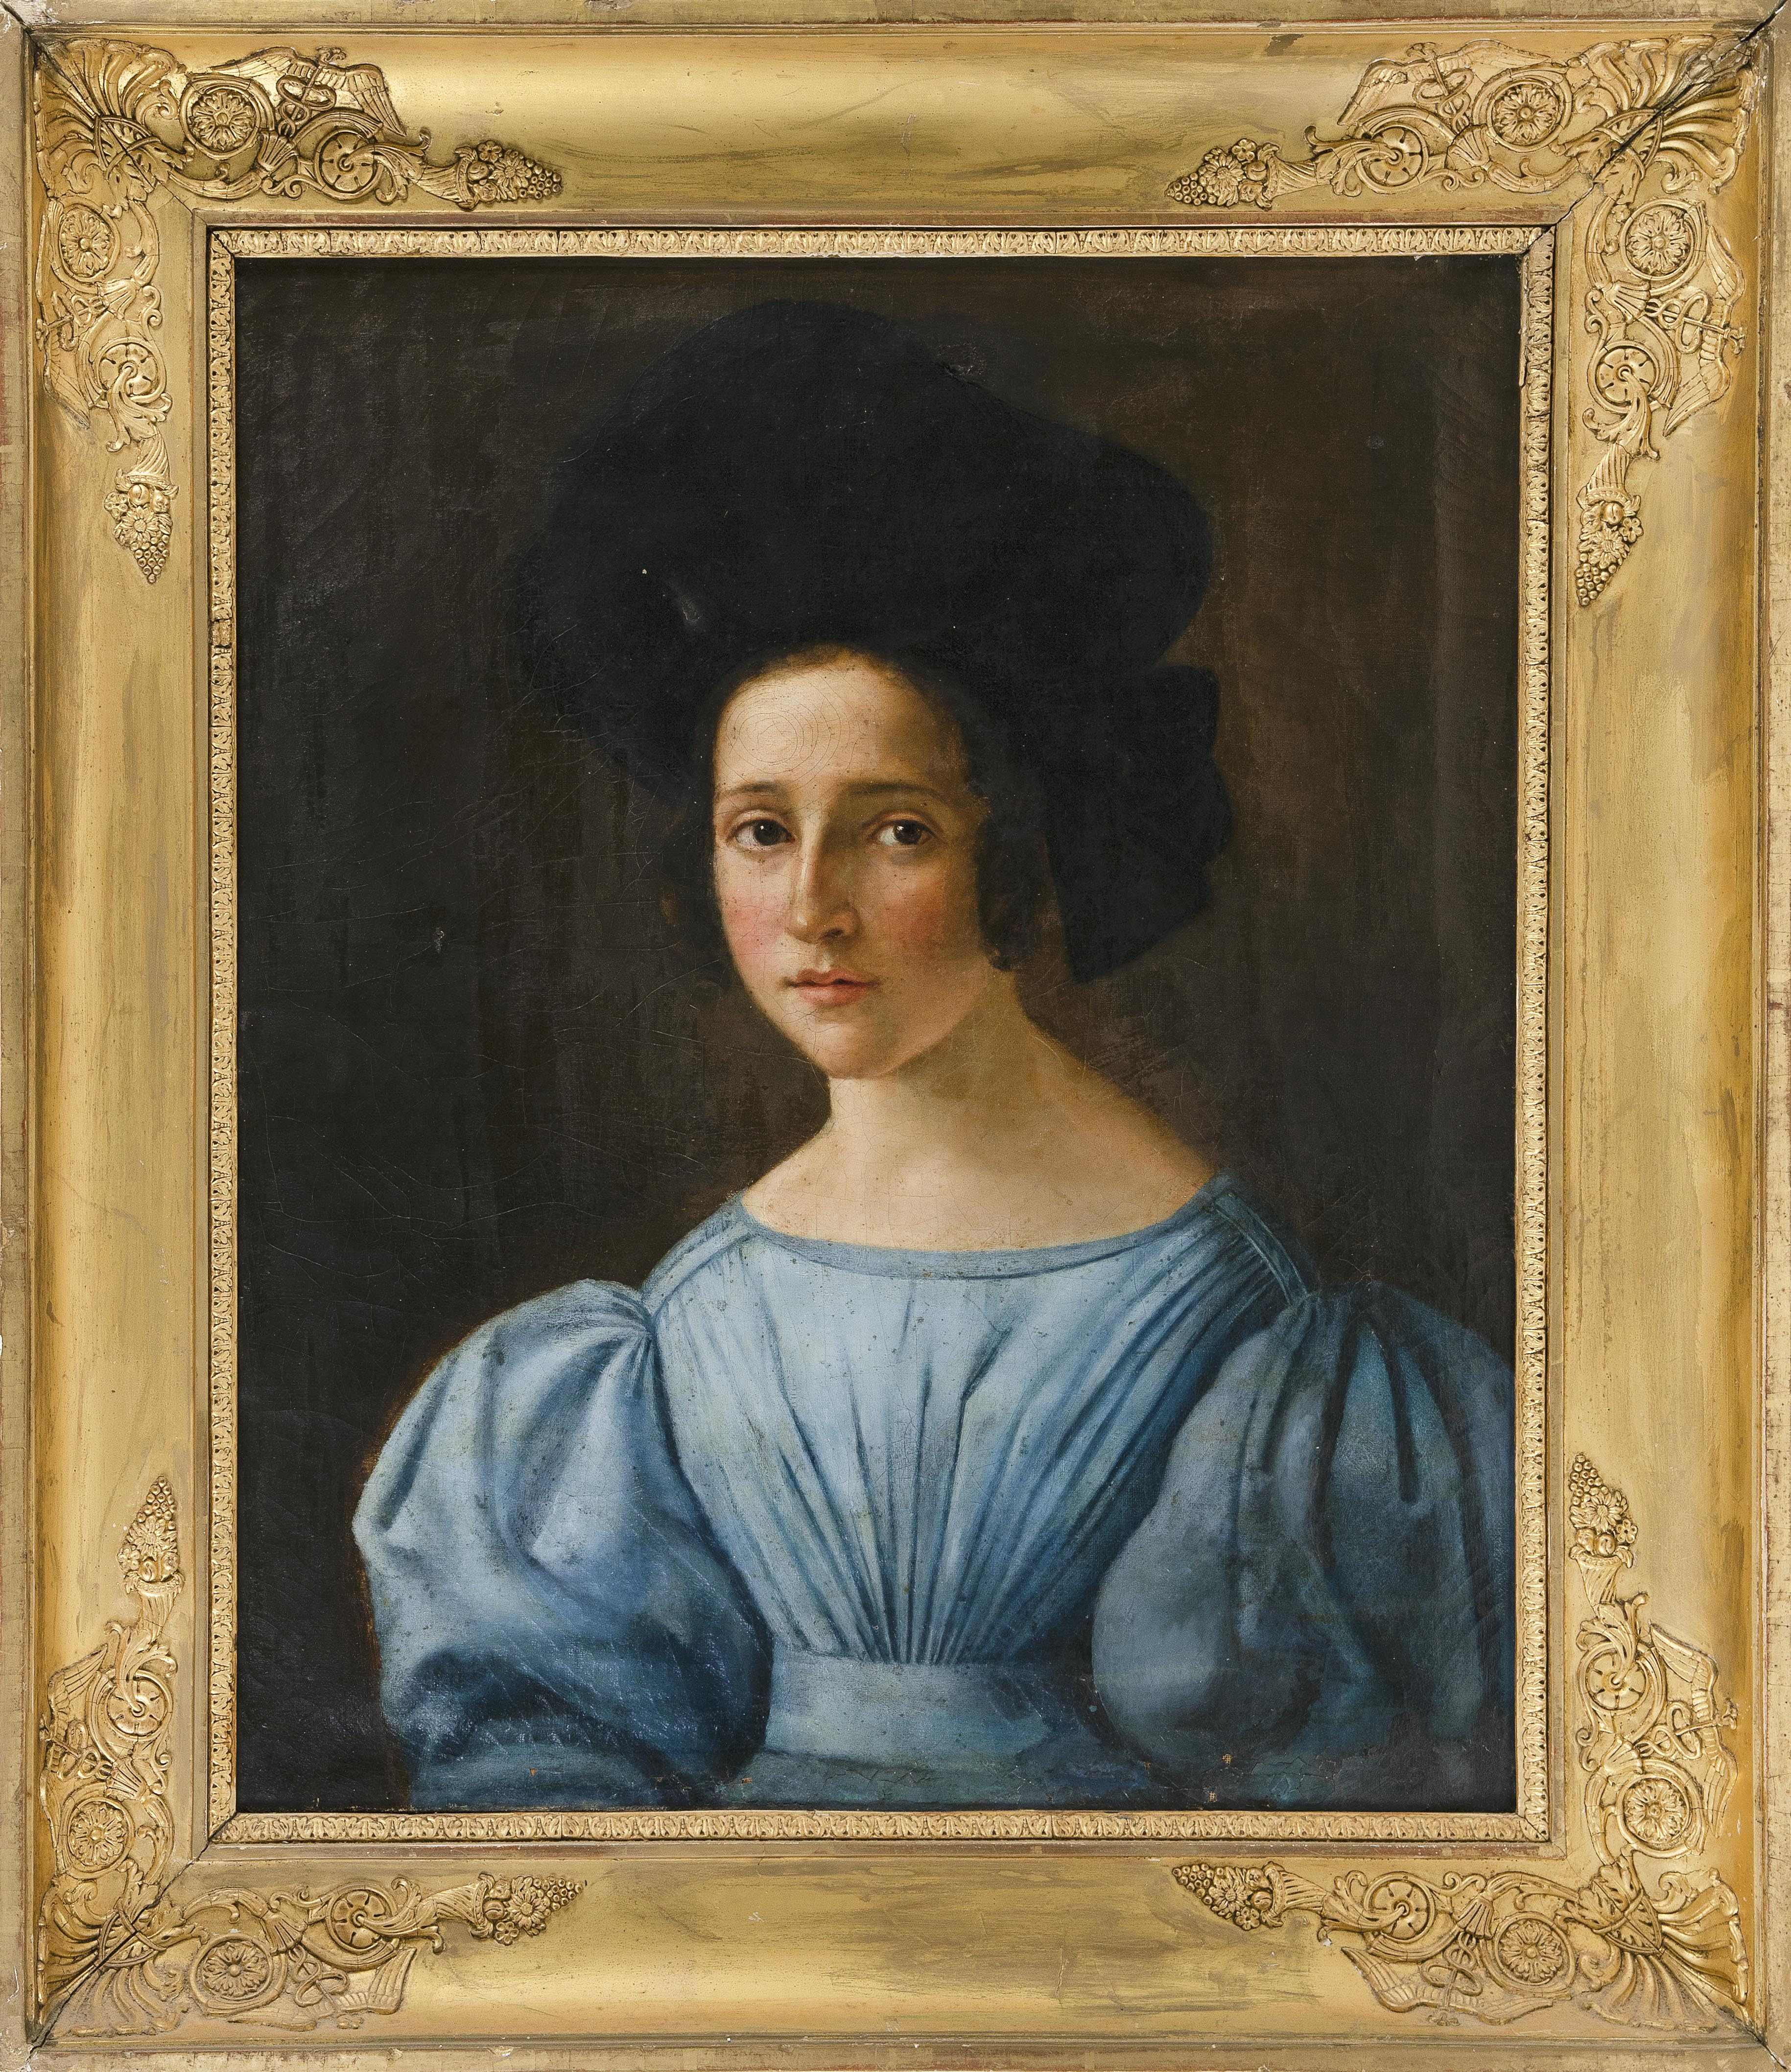 CONTINENTAL SCHOOL (19th Century,), Portrait of a young woman in a blue dress., Oil on canvas, 25